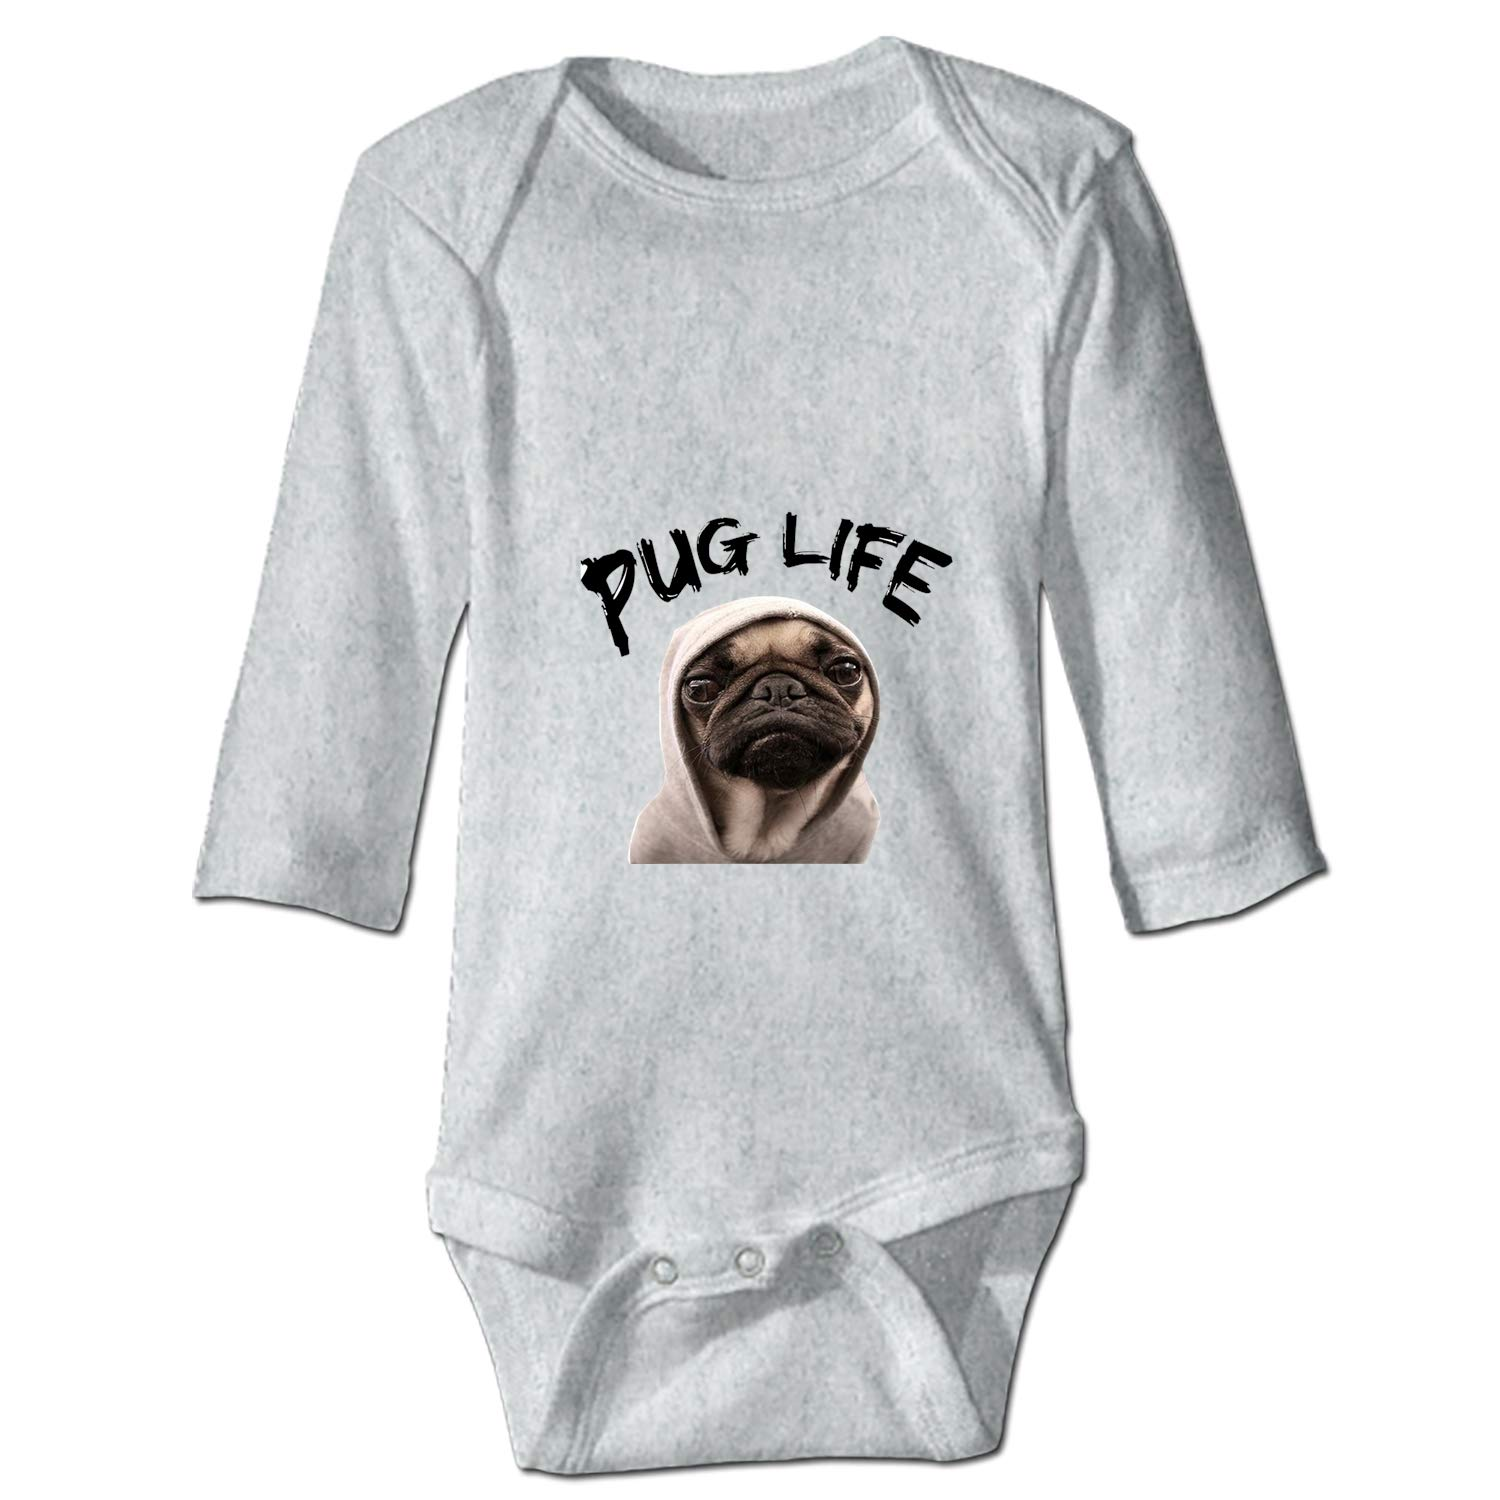 24M 6M XASFF Baby Cotton Bodysuits French Bulldog Long-Sleeve One-Piece Suit